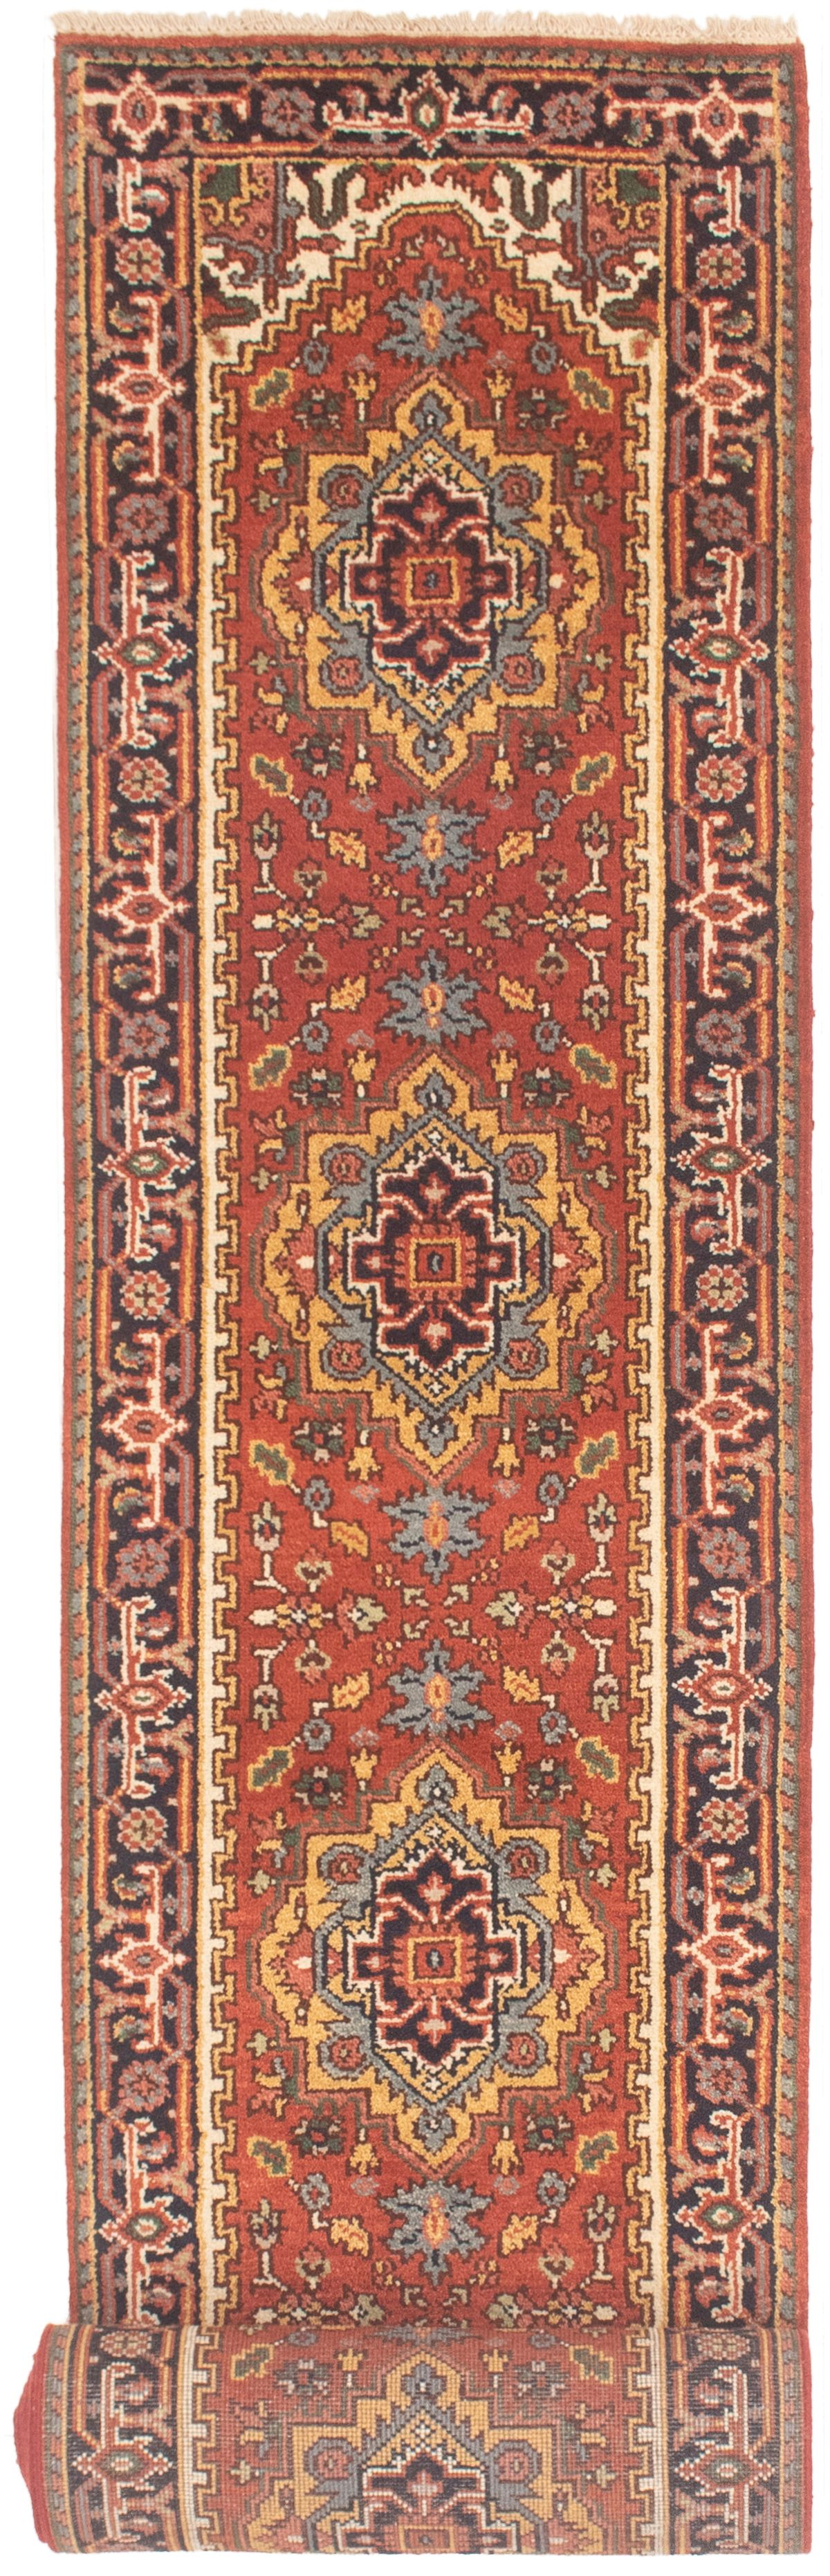 """Hand-knotted Serapi Heritage Dark Copper Wool Rug 2'6"""" x 19'10""""  Size: 2'6"""" x 19'10"""""""